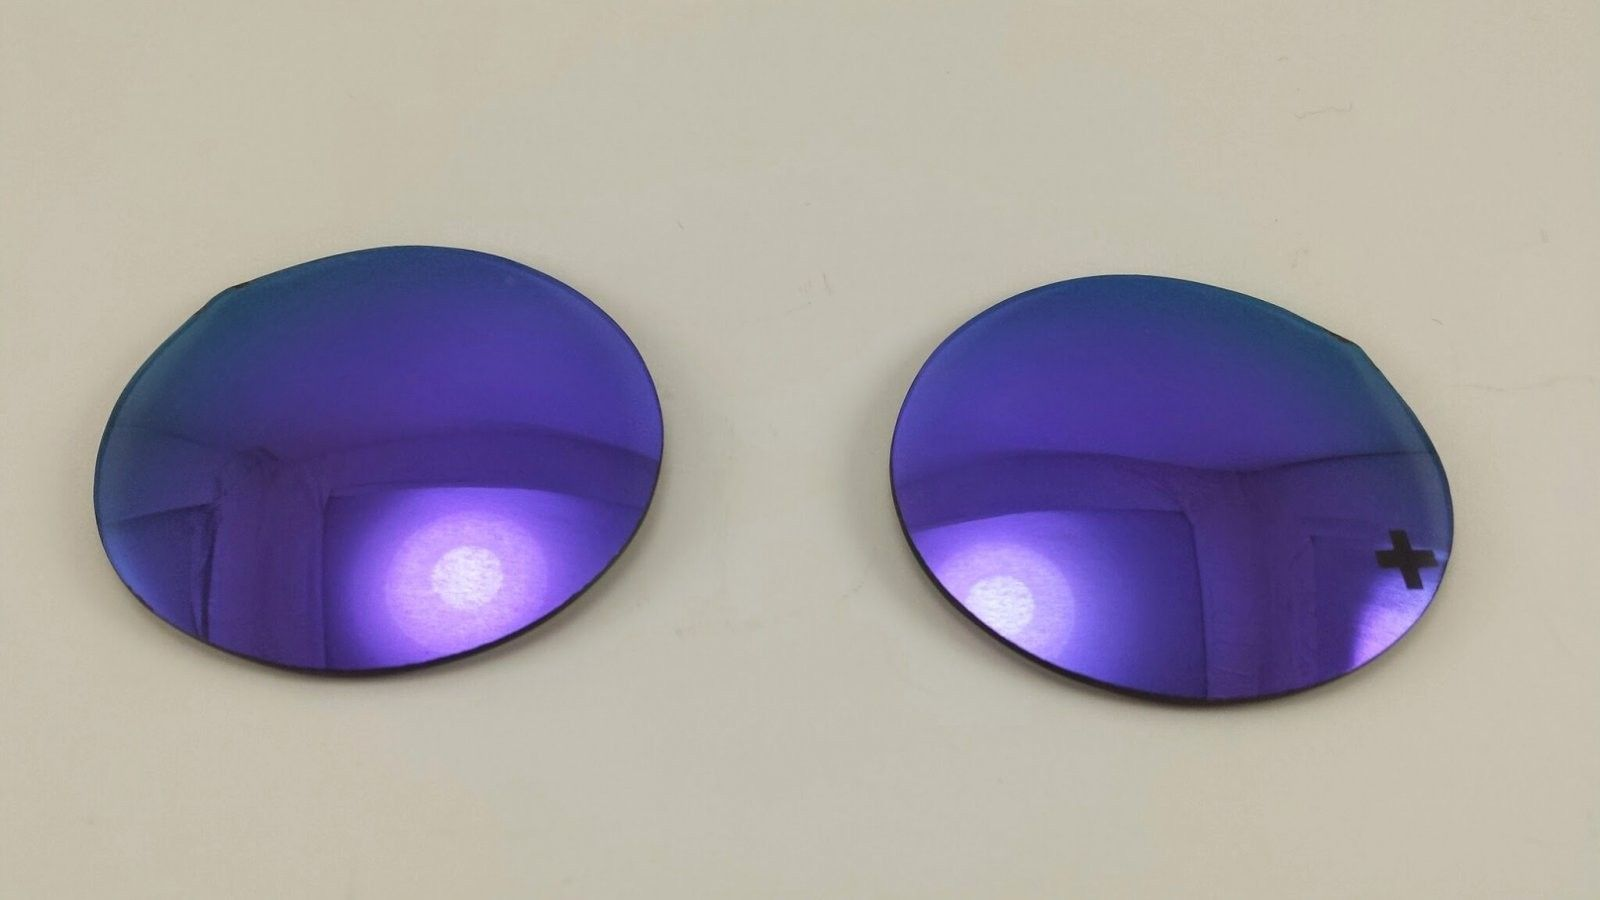 Mars Violet Non-polar Lenses With Etched Cross - 20140622_102404.jpg